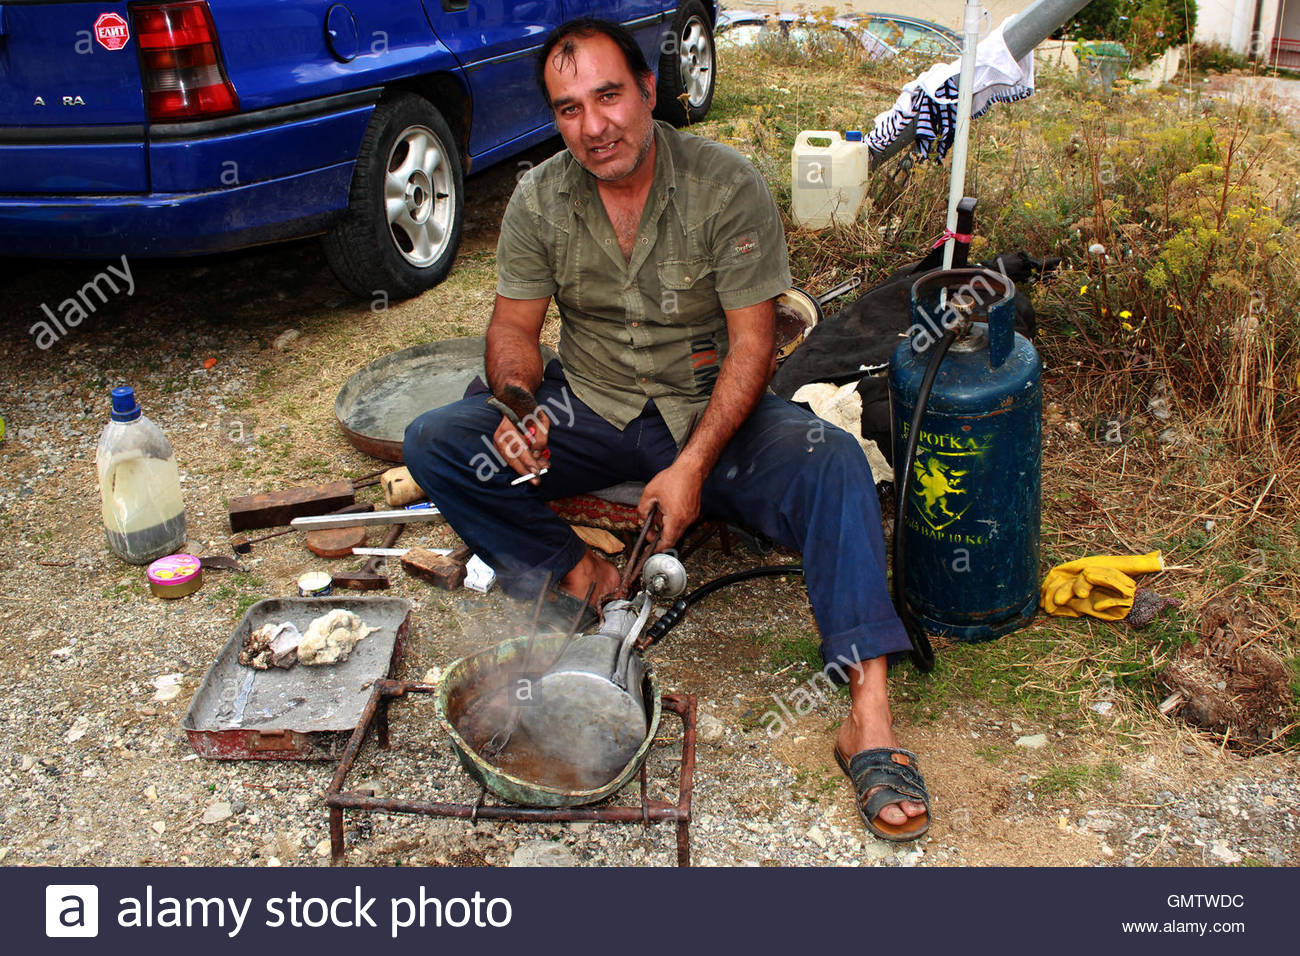 A wandering craftsman is applying melted alloy to bronze cooking pots - Stock Image